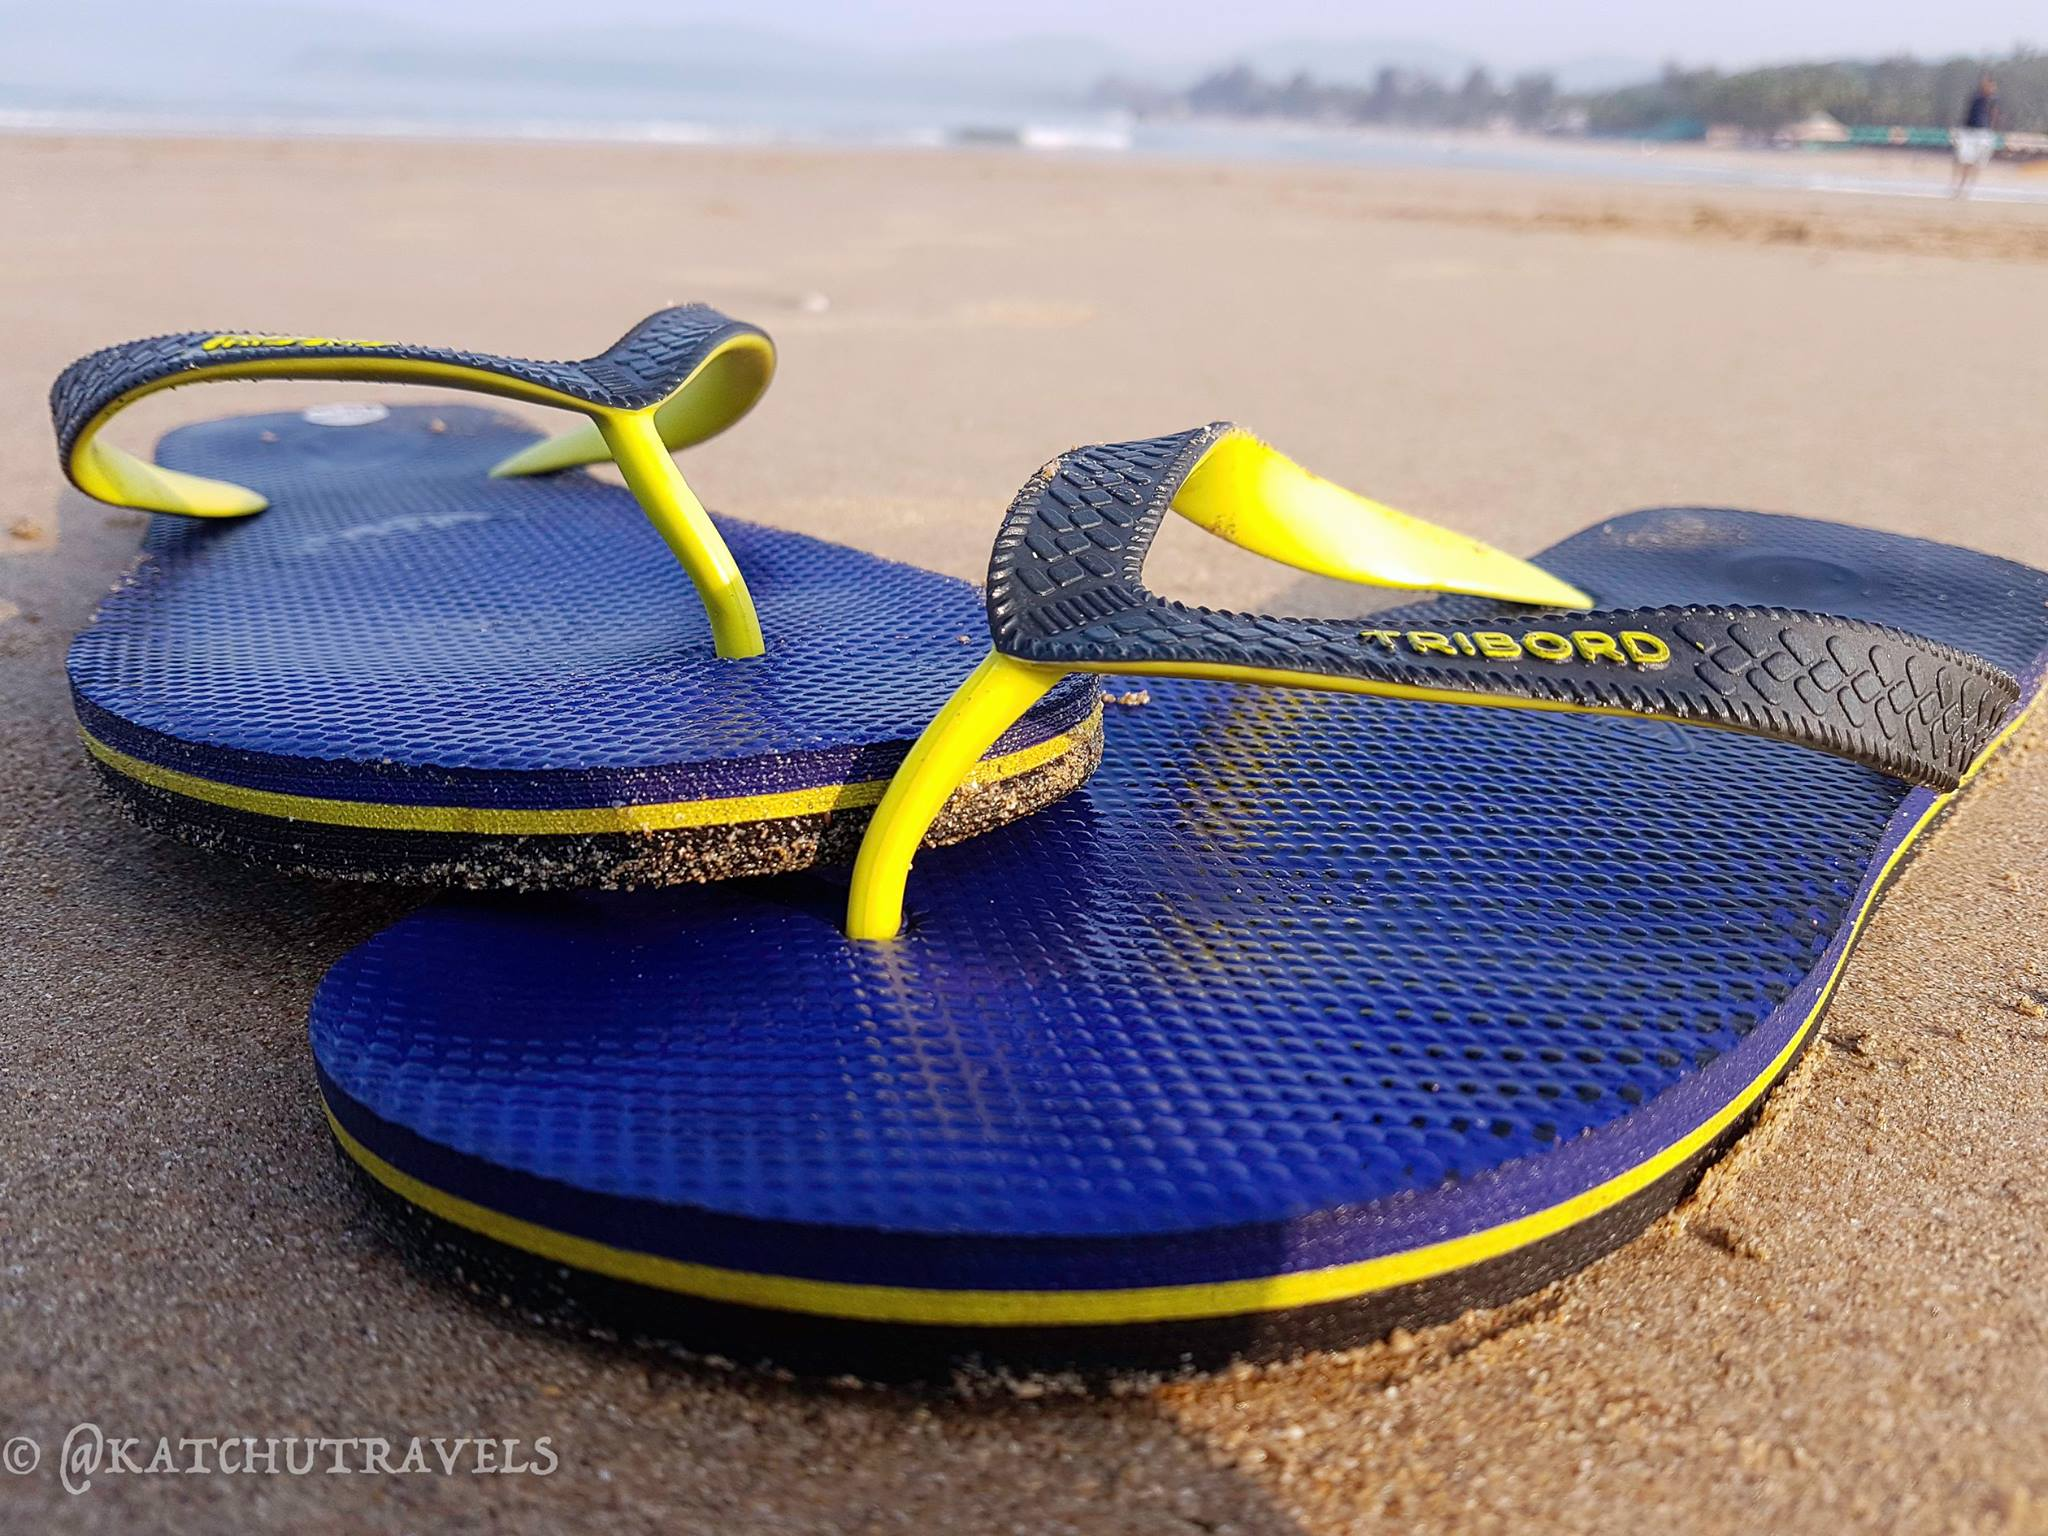 Showing off my Tribord slippers at Agonda (Goa)